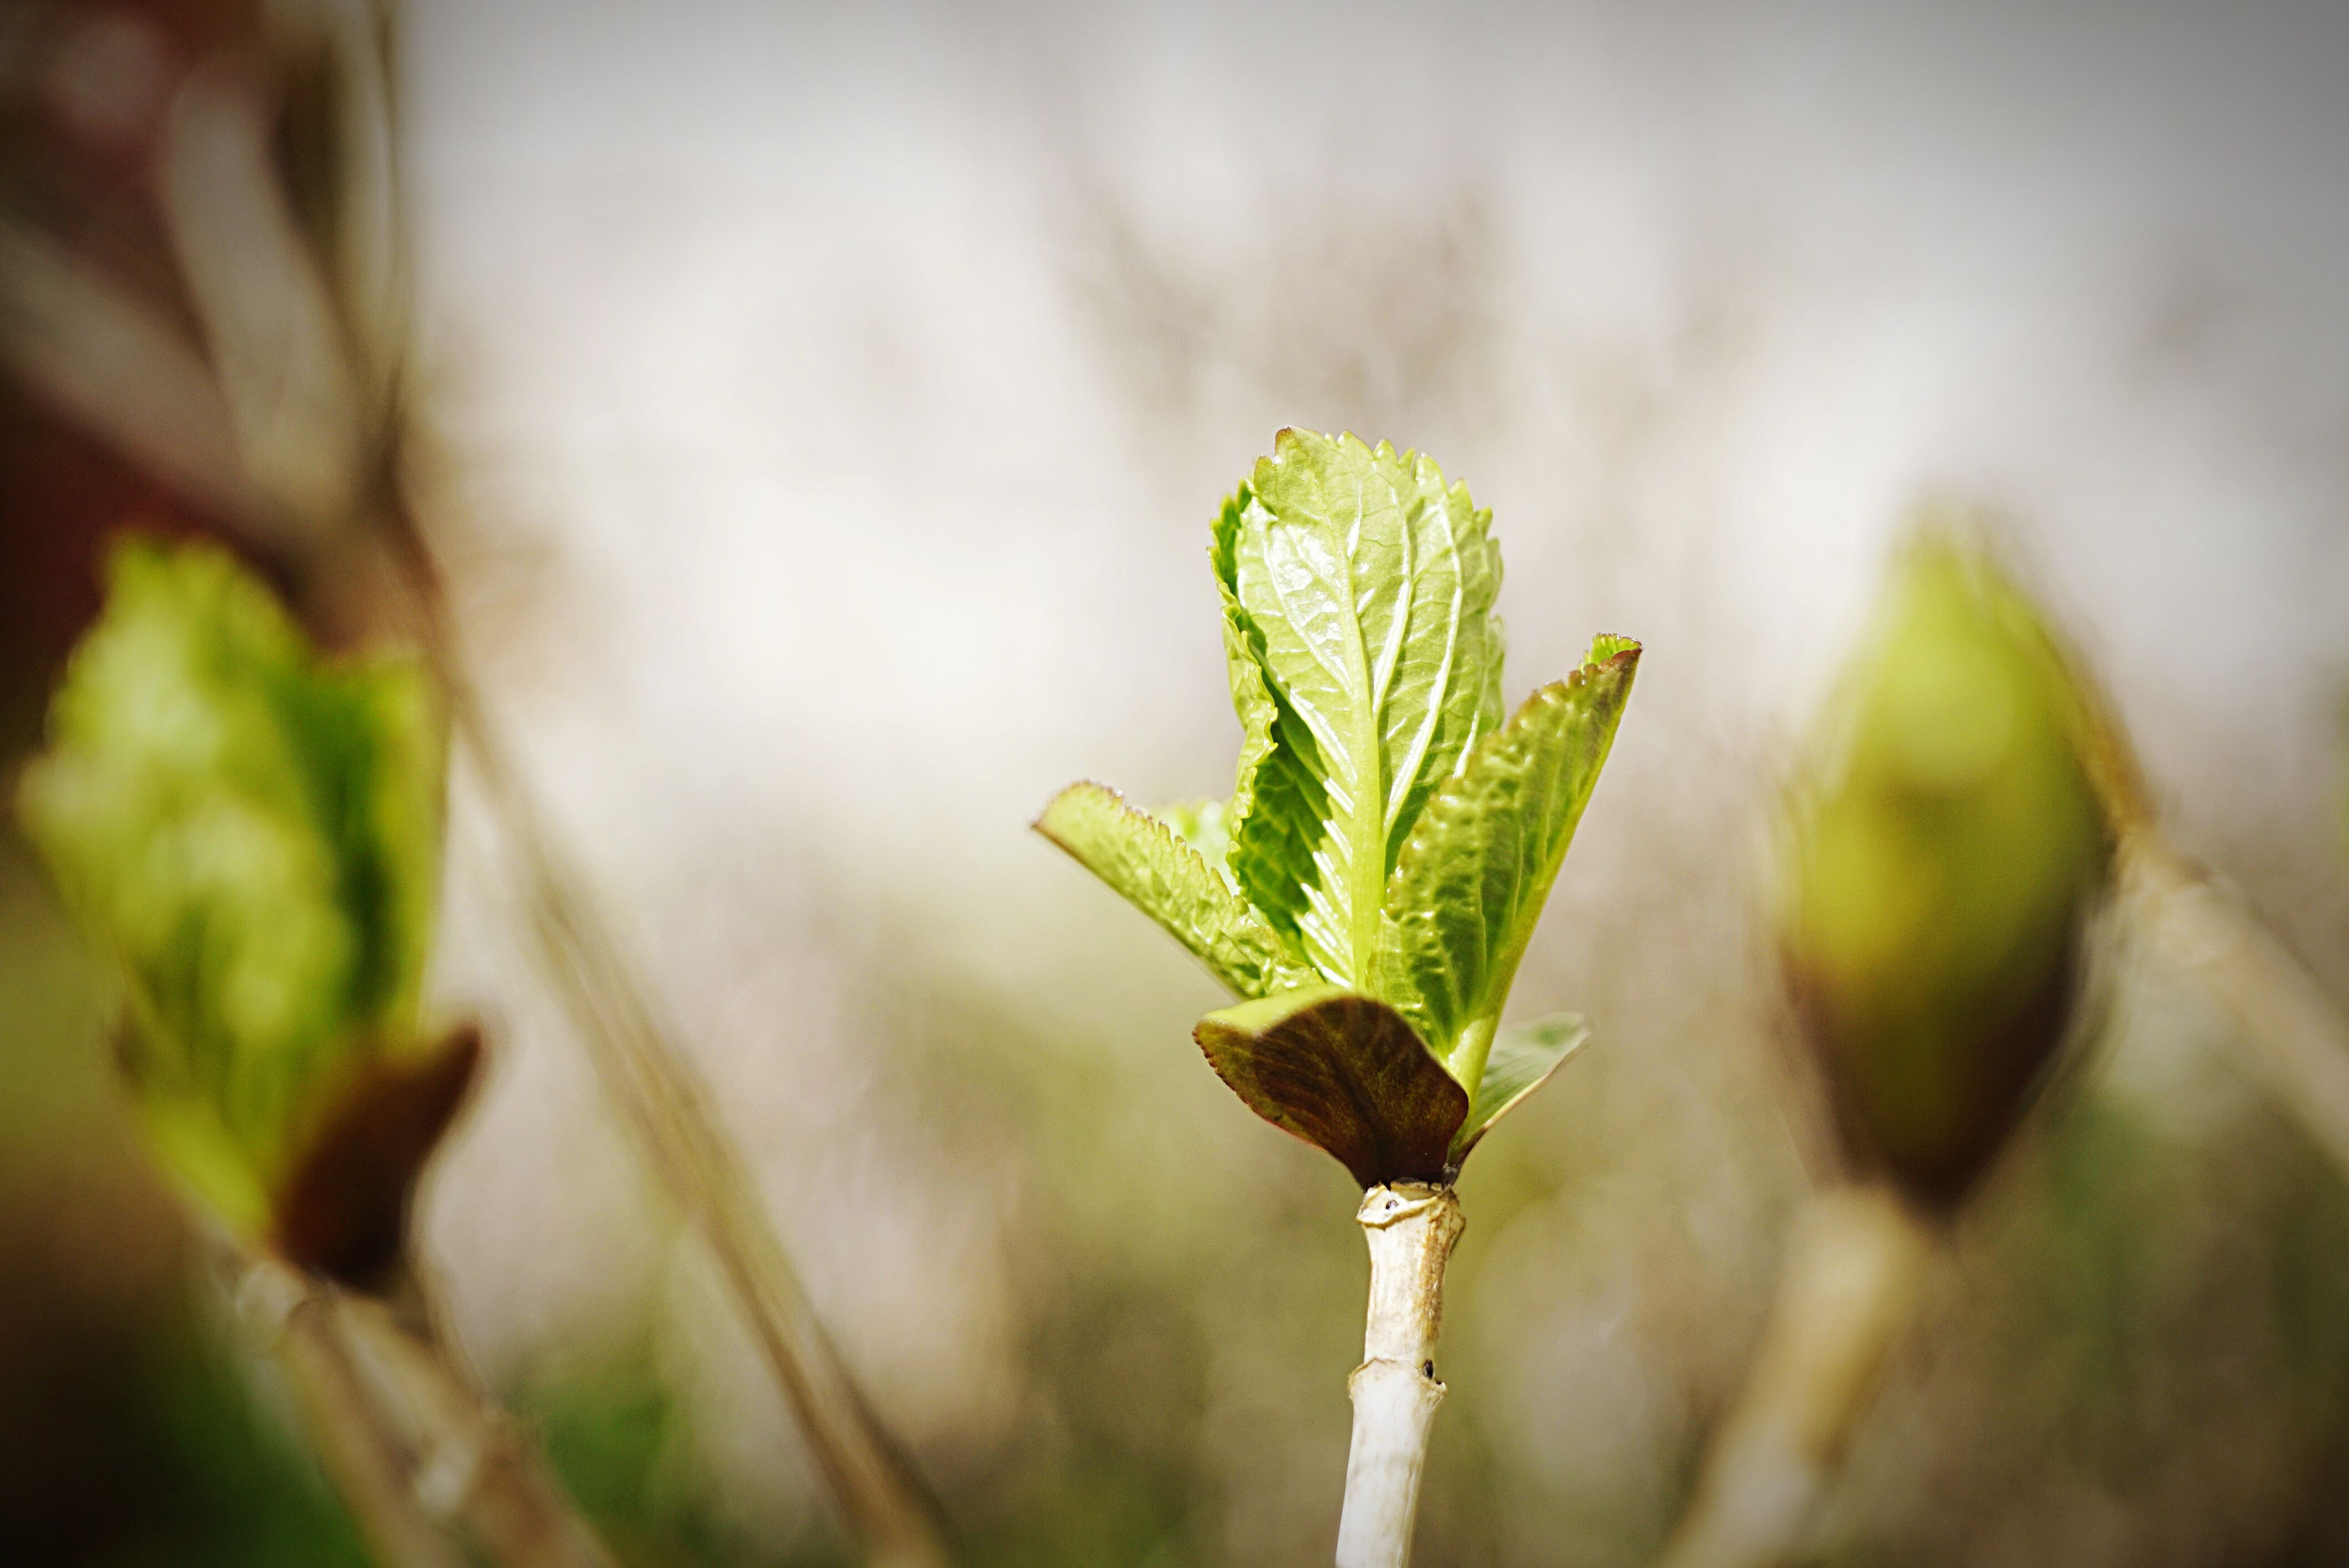 leaf, focus on foreground, close-up, growth, plant, green color, nature, stem, selective focus, growing, beginnings, twig, new life, bud, beauty in nature, outdoors, day, tranquility, freshness, no people